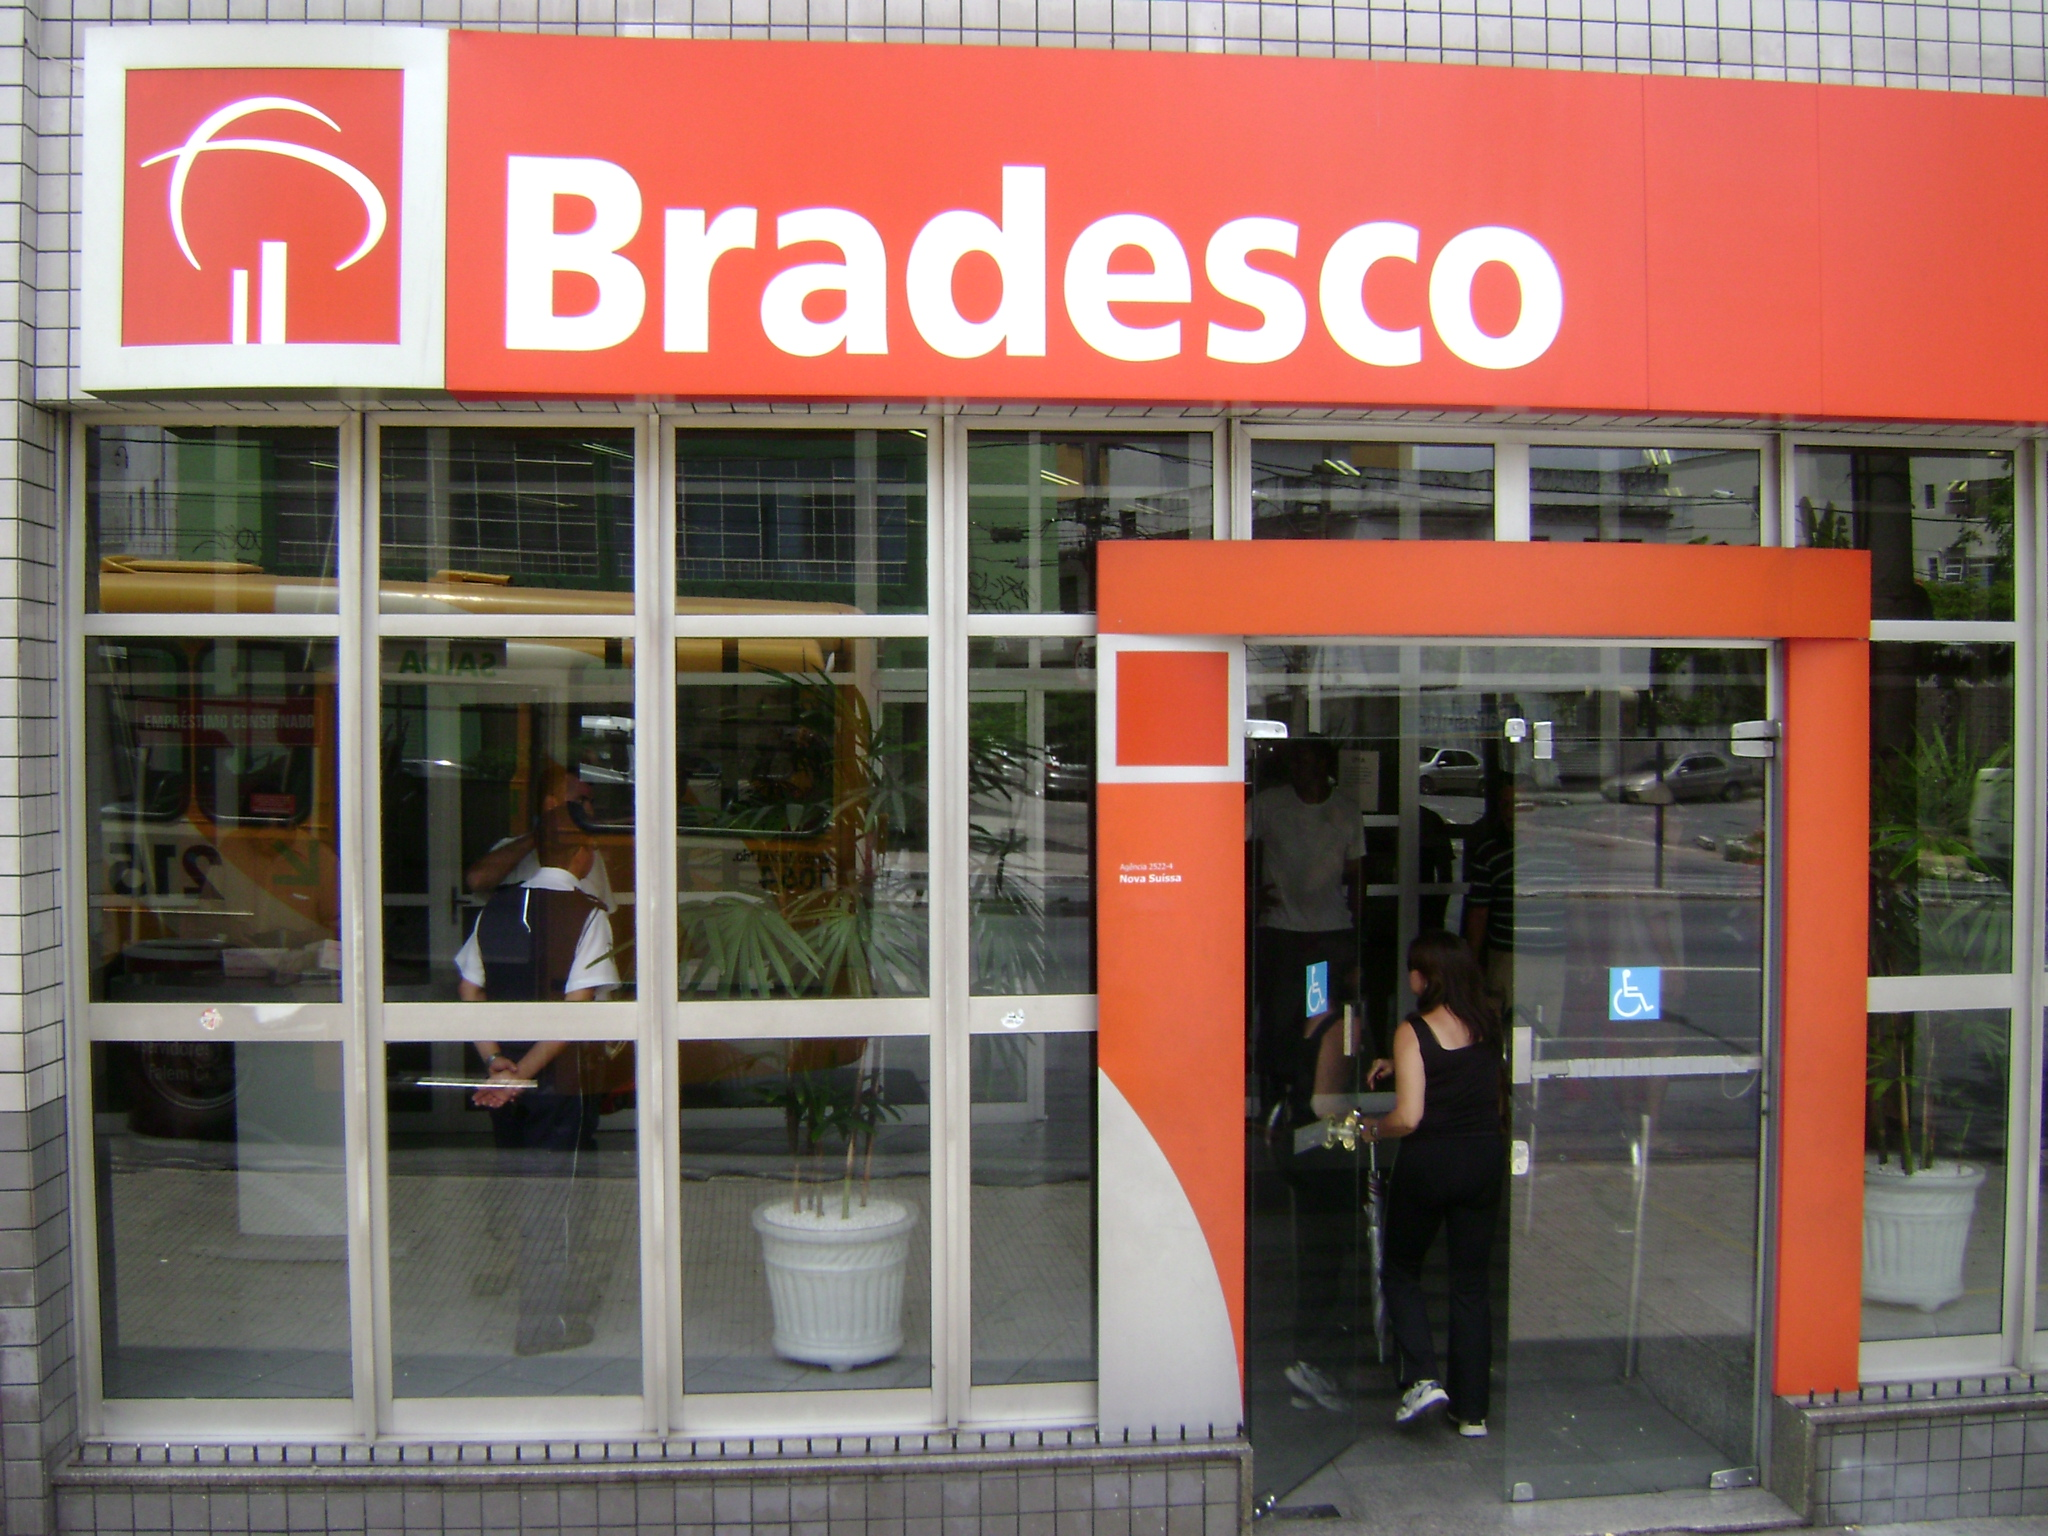 File:Bradesco.JPG - Wi...